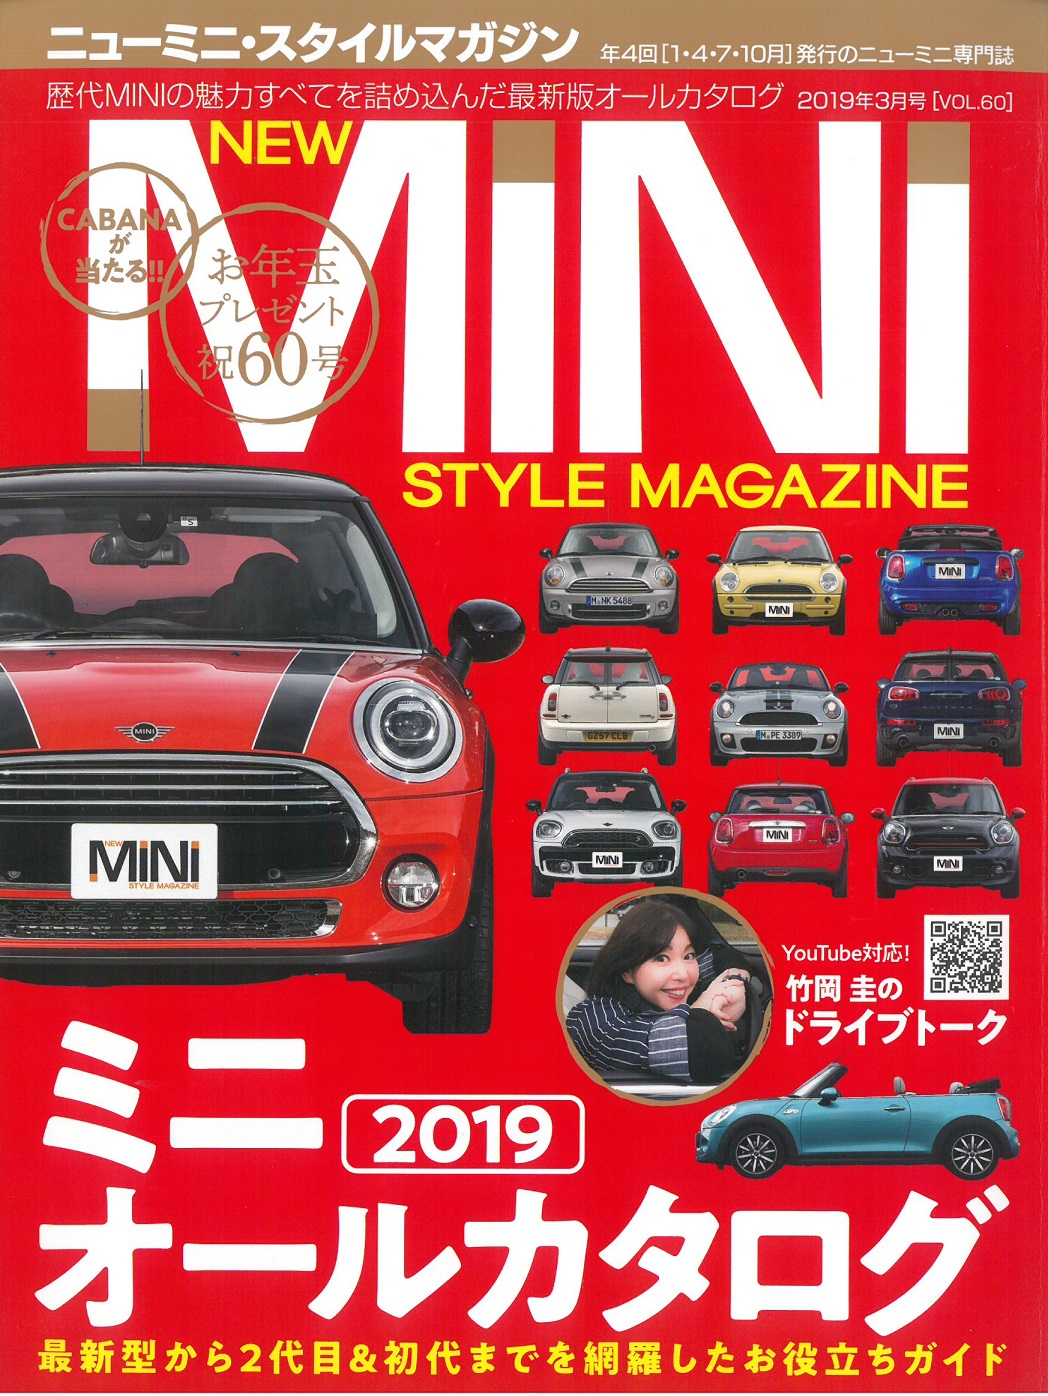 NEW MINI STYLEMAGAZINE vol.60